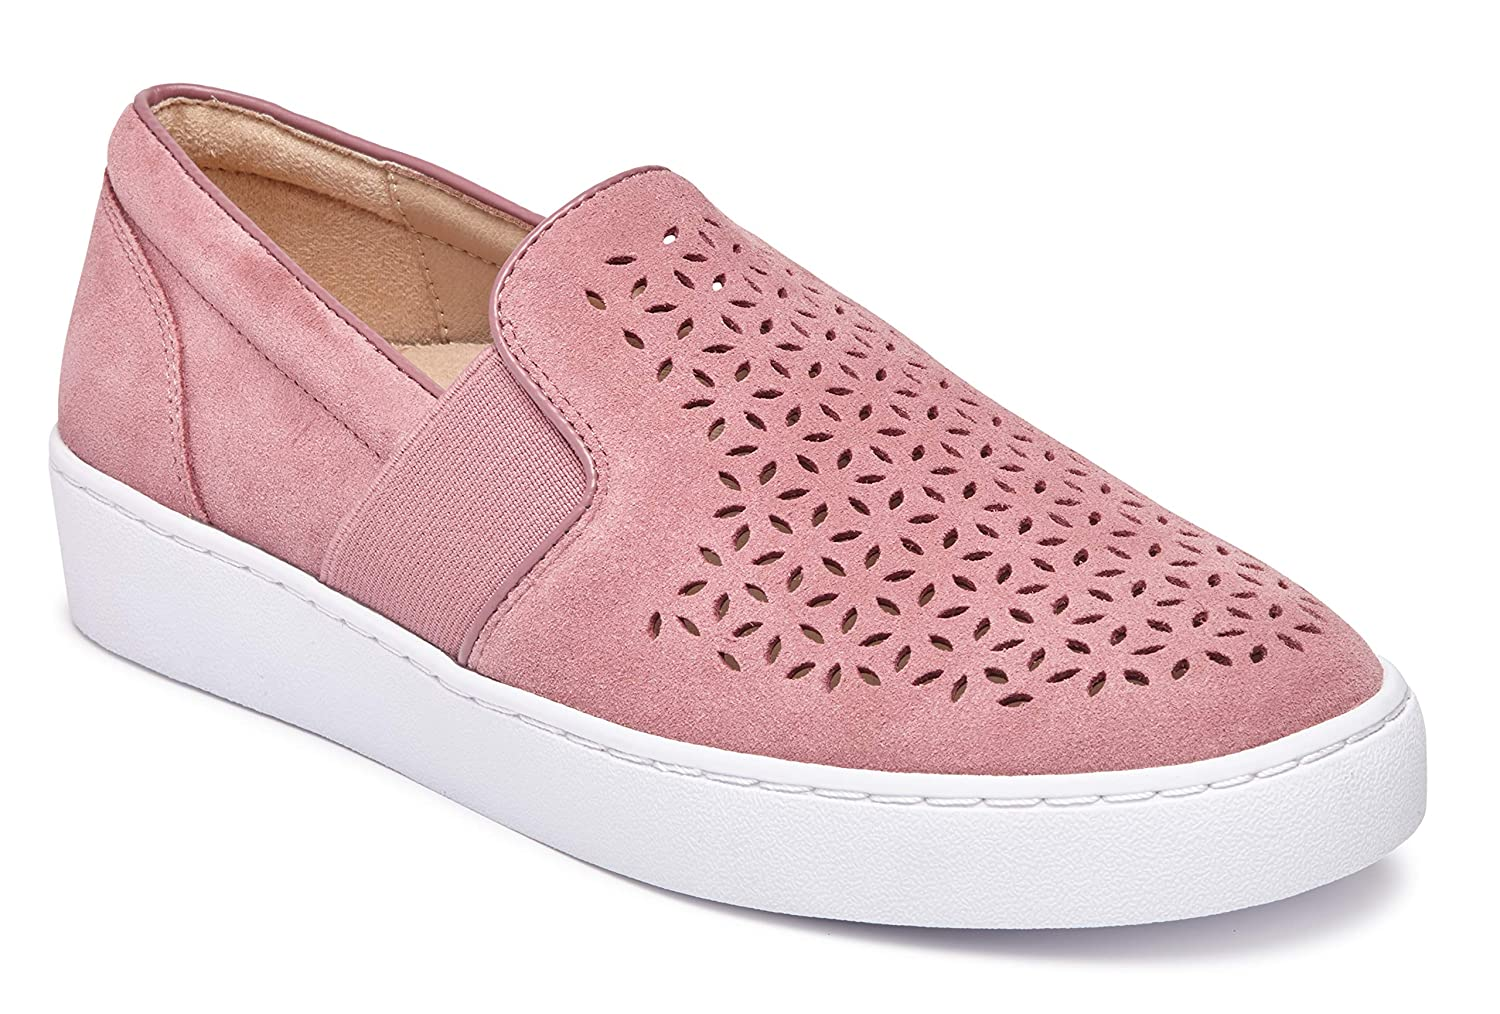 bac1e7c0bcae2 Vionic Women's Splendid Kani Slip-on Walking Shoes - Ladies Athleisure  Sneakers with Concealed Orthotic Arch Support